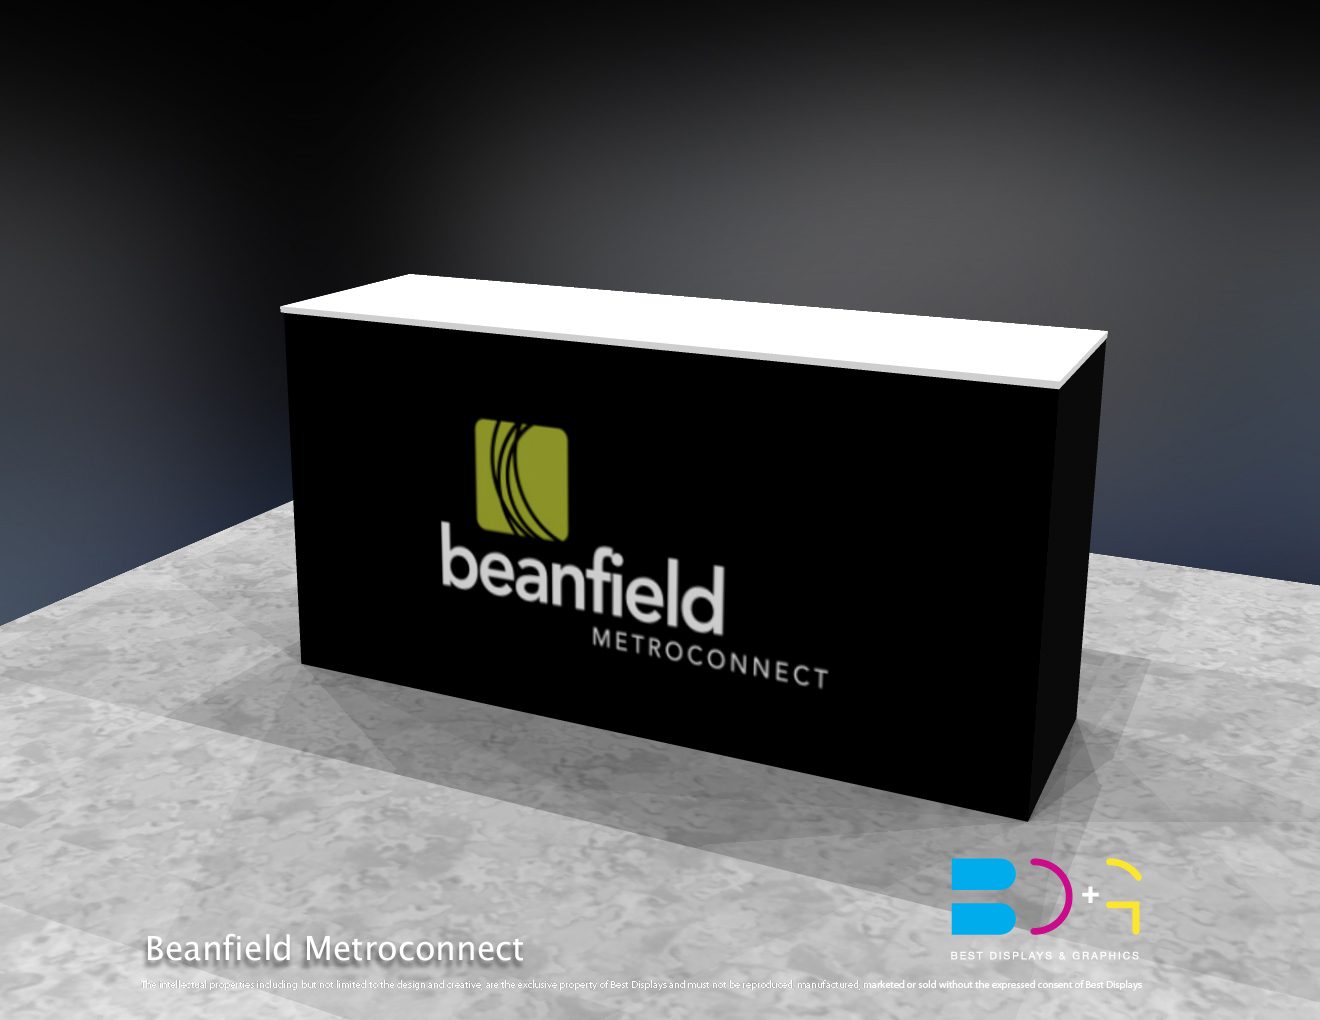 beanfield metroconnect counter